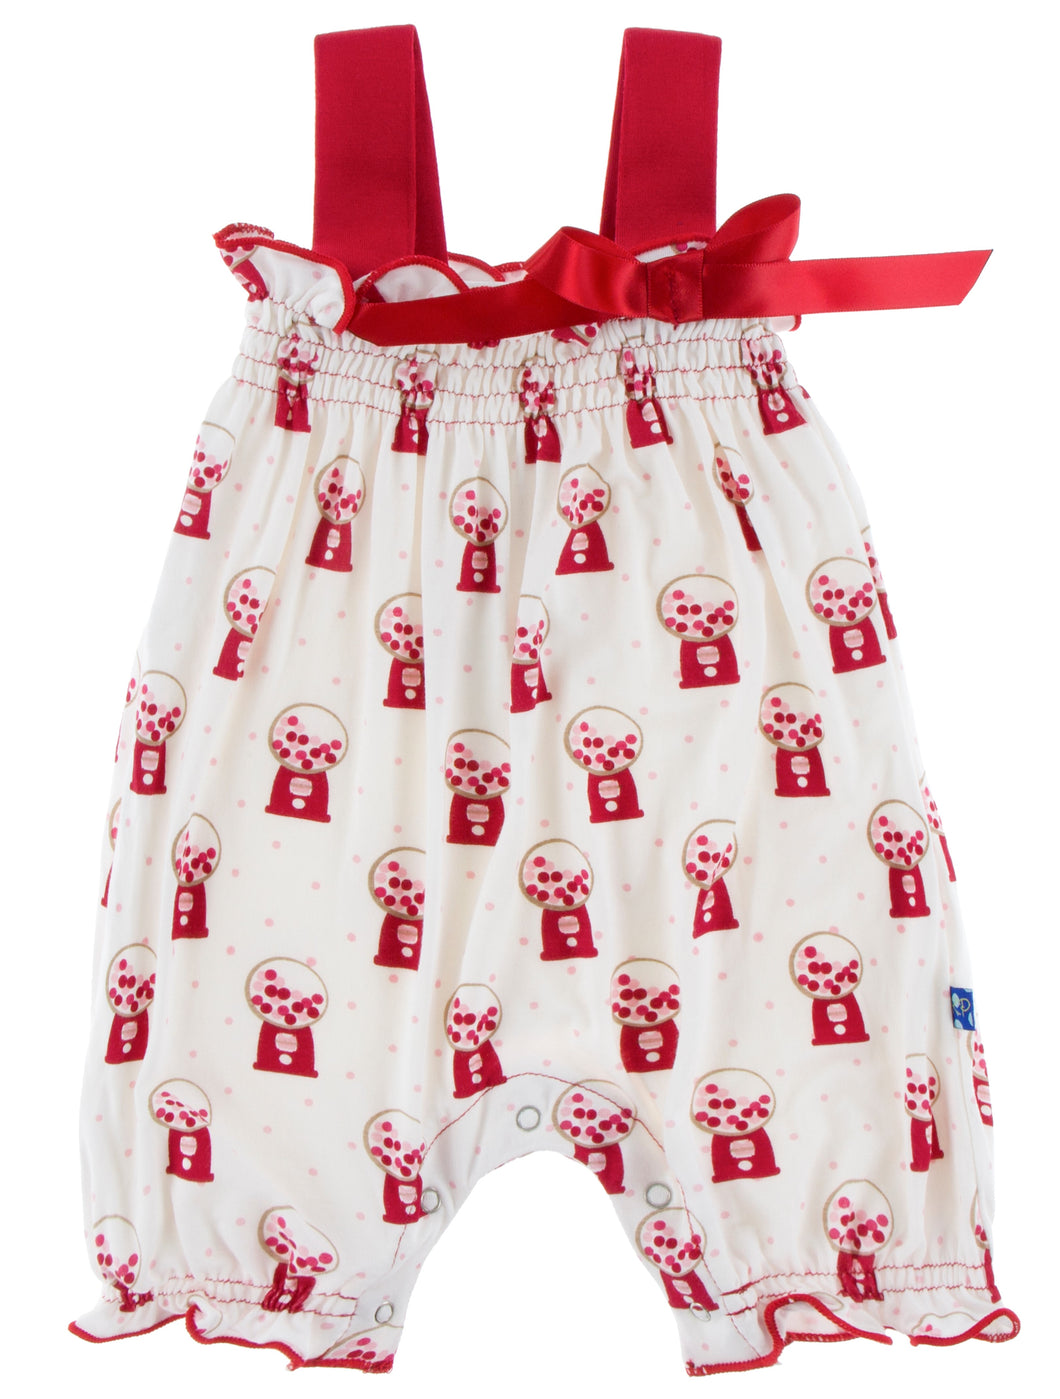 KicKee Pants Gathered Romper with Bow - Natural Gumball